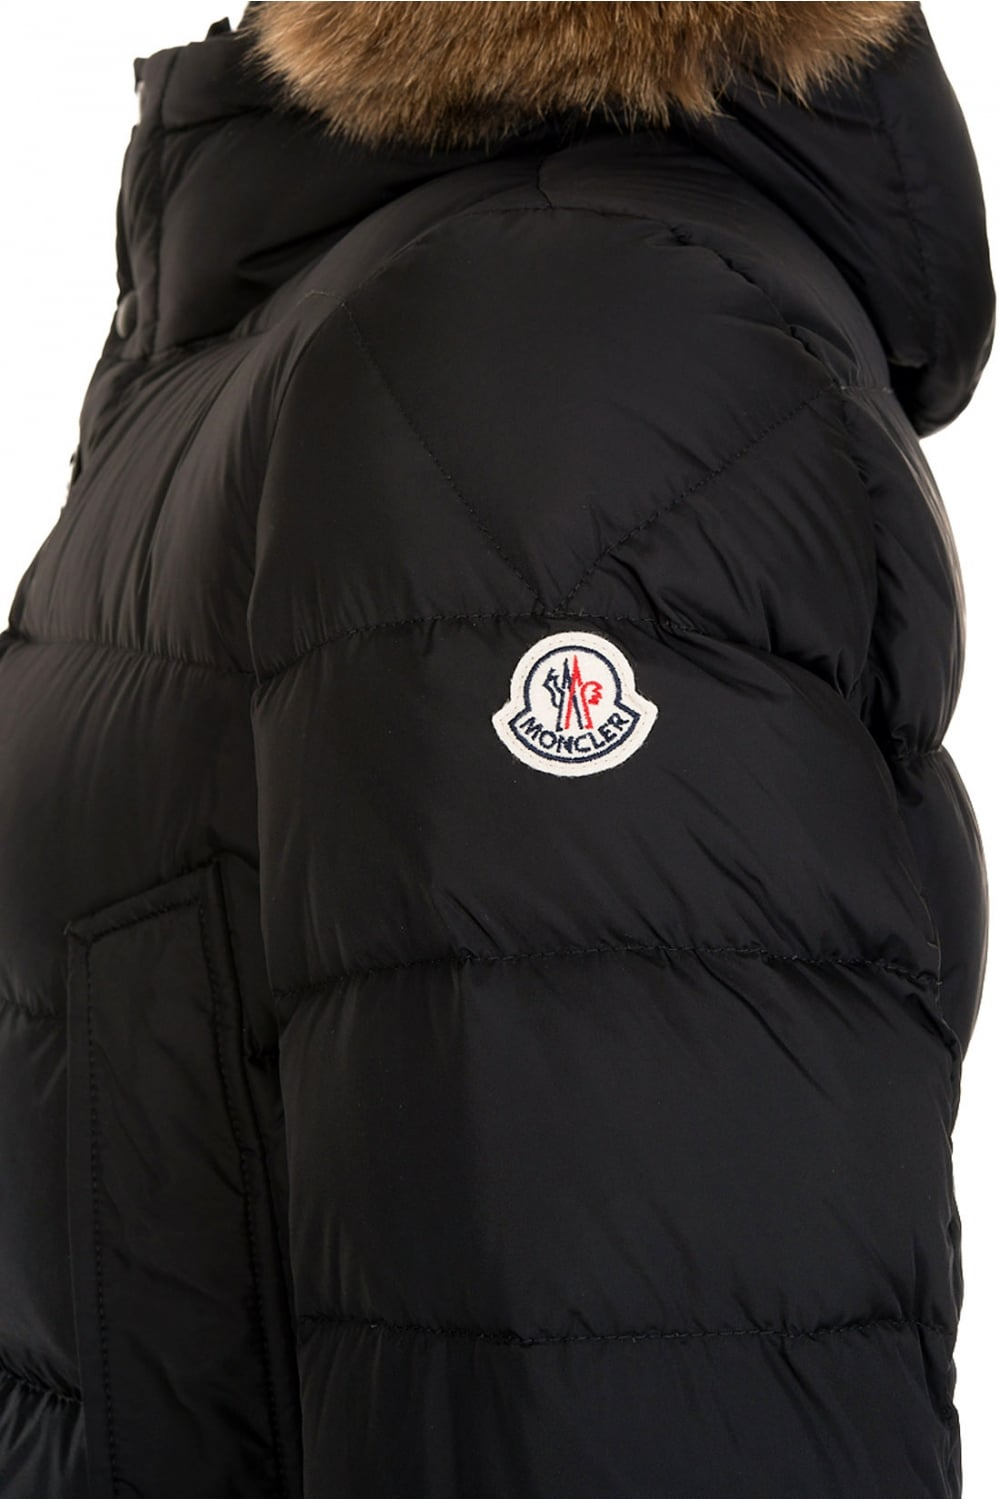 Moncler Jackets Womens